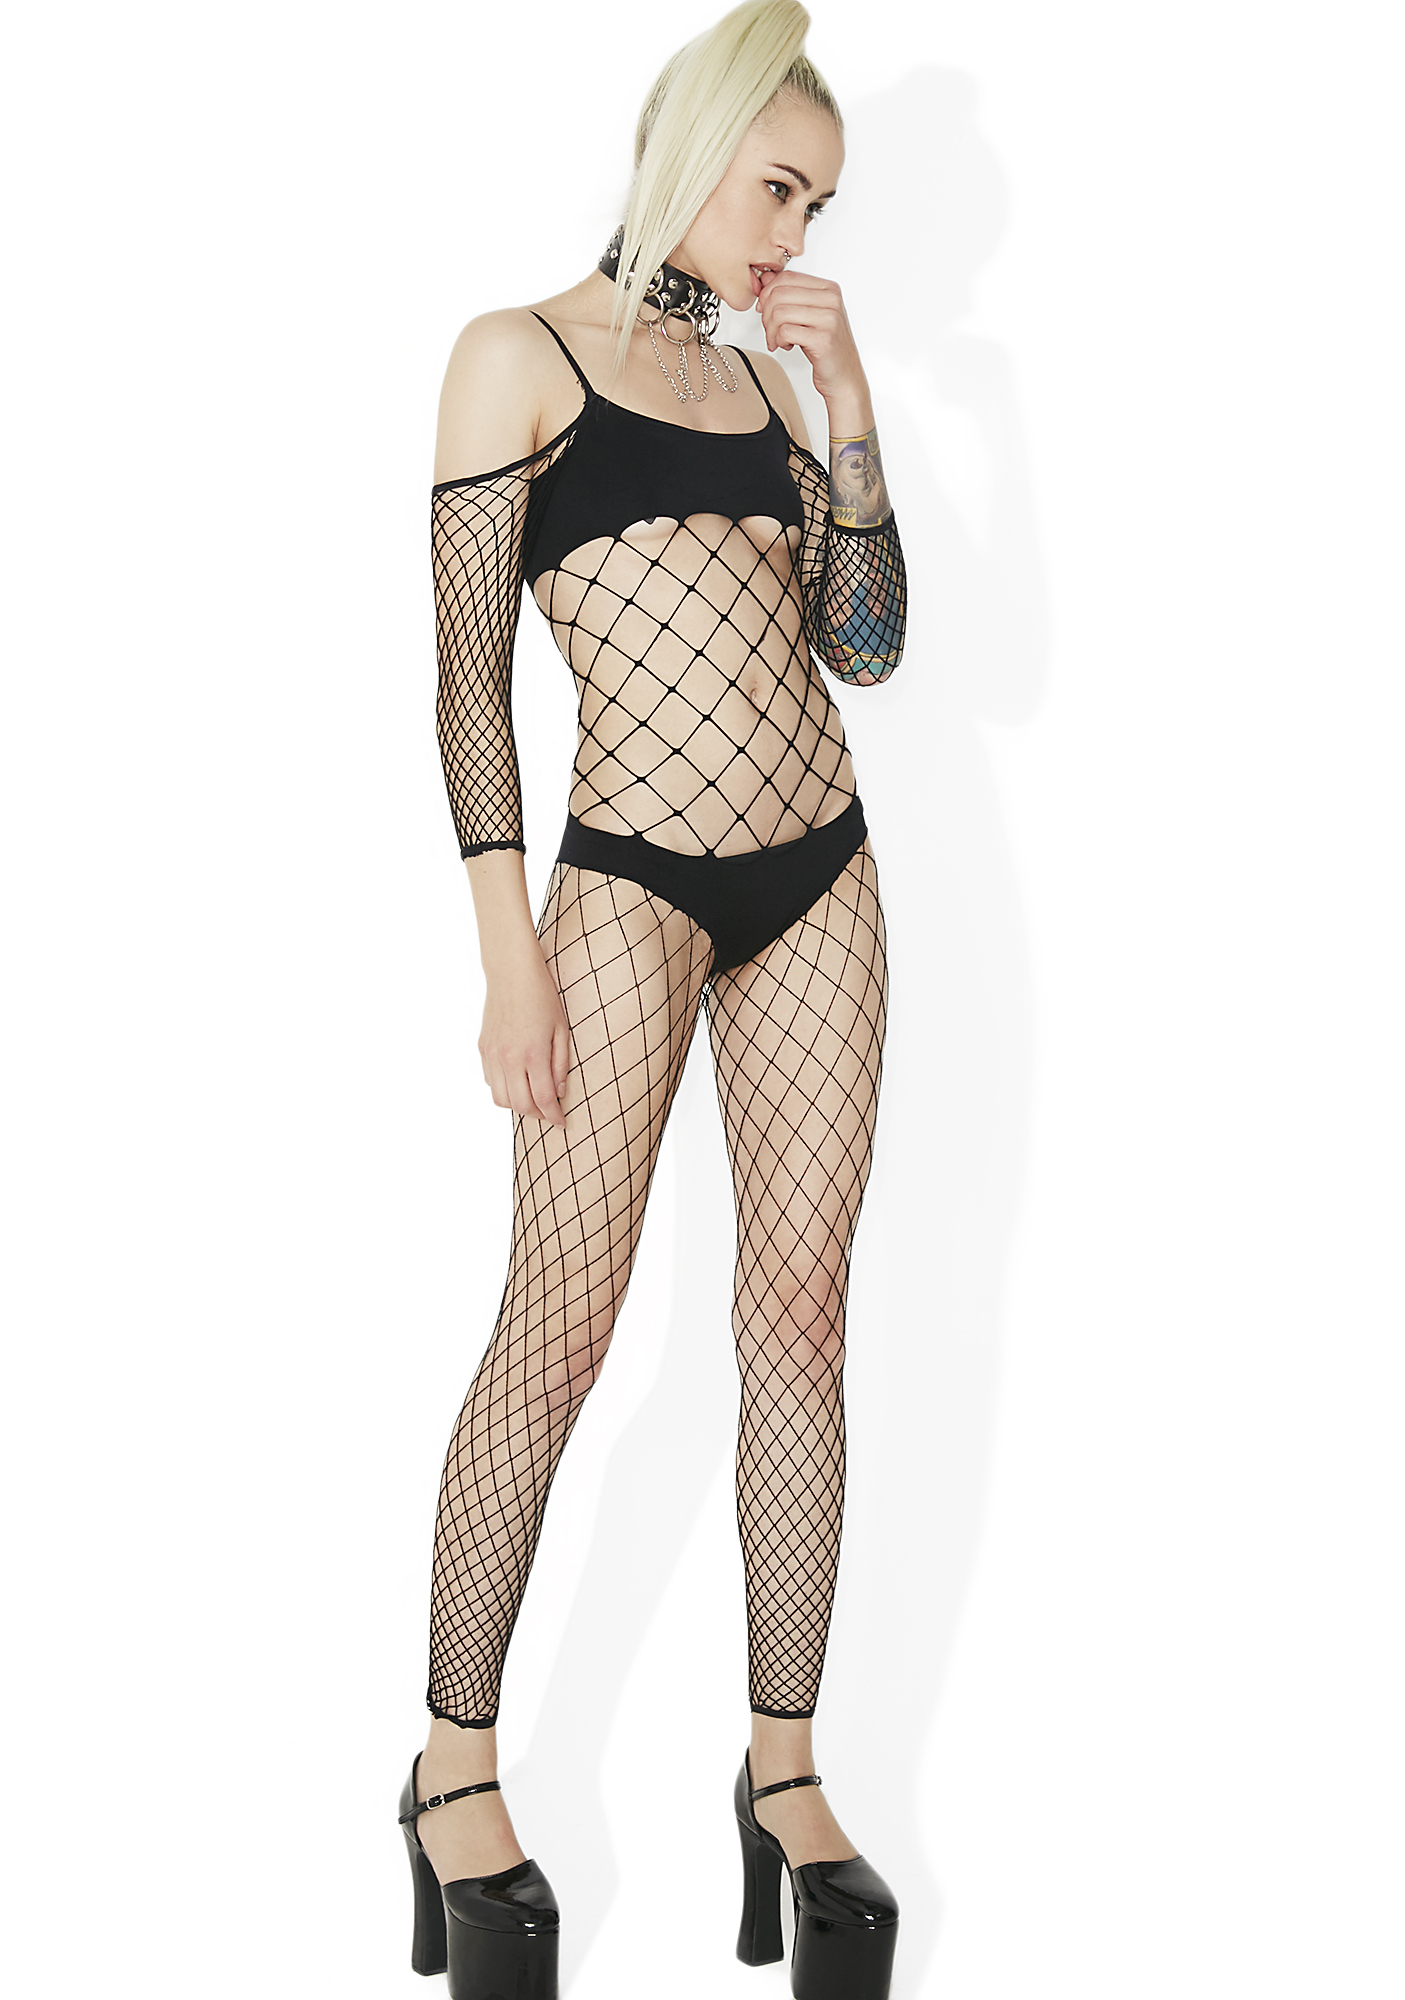 Black Bikini Fishnet Bodystocking